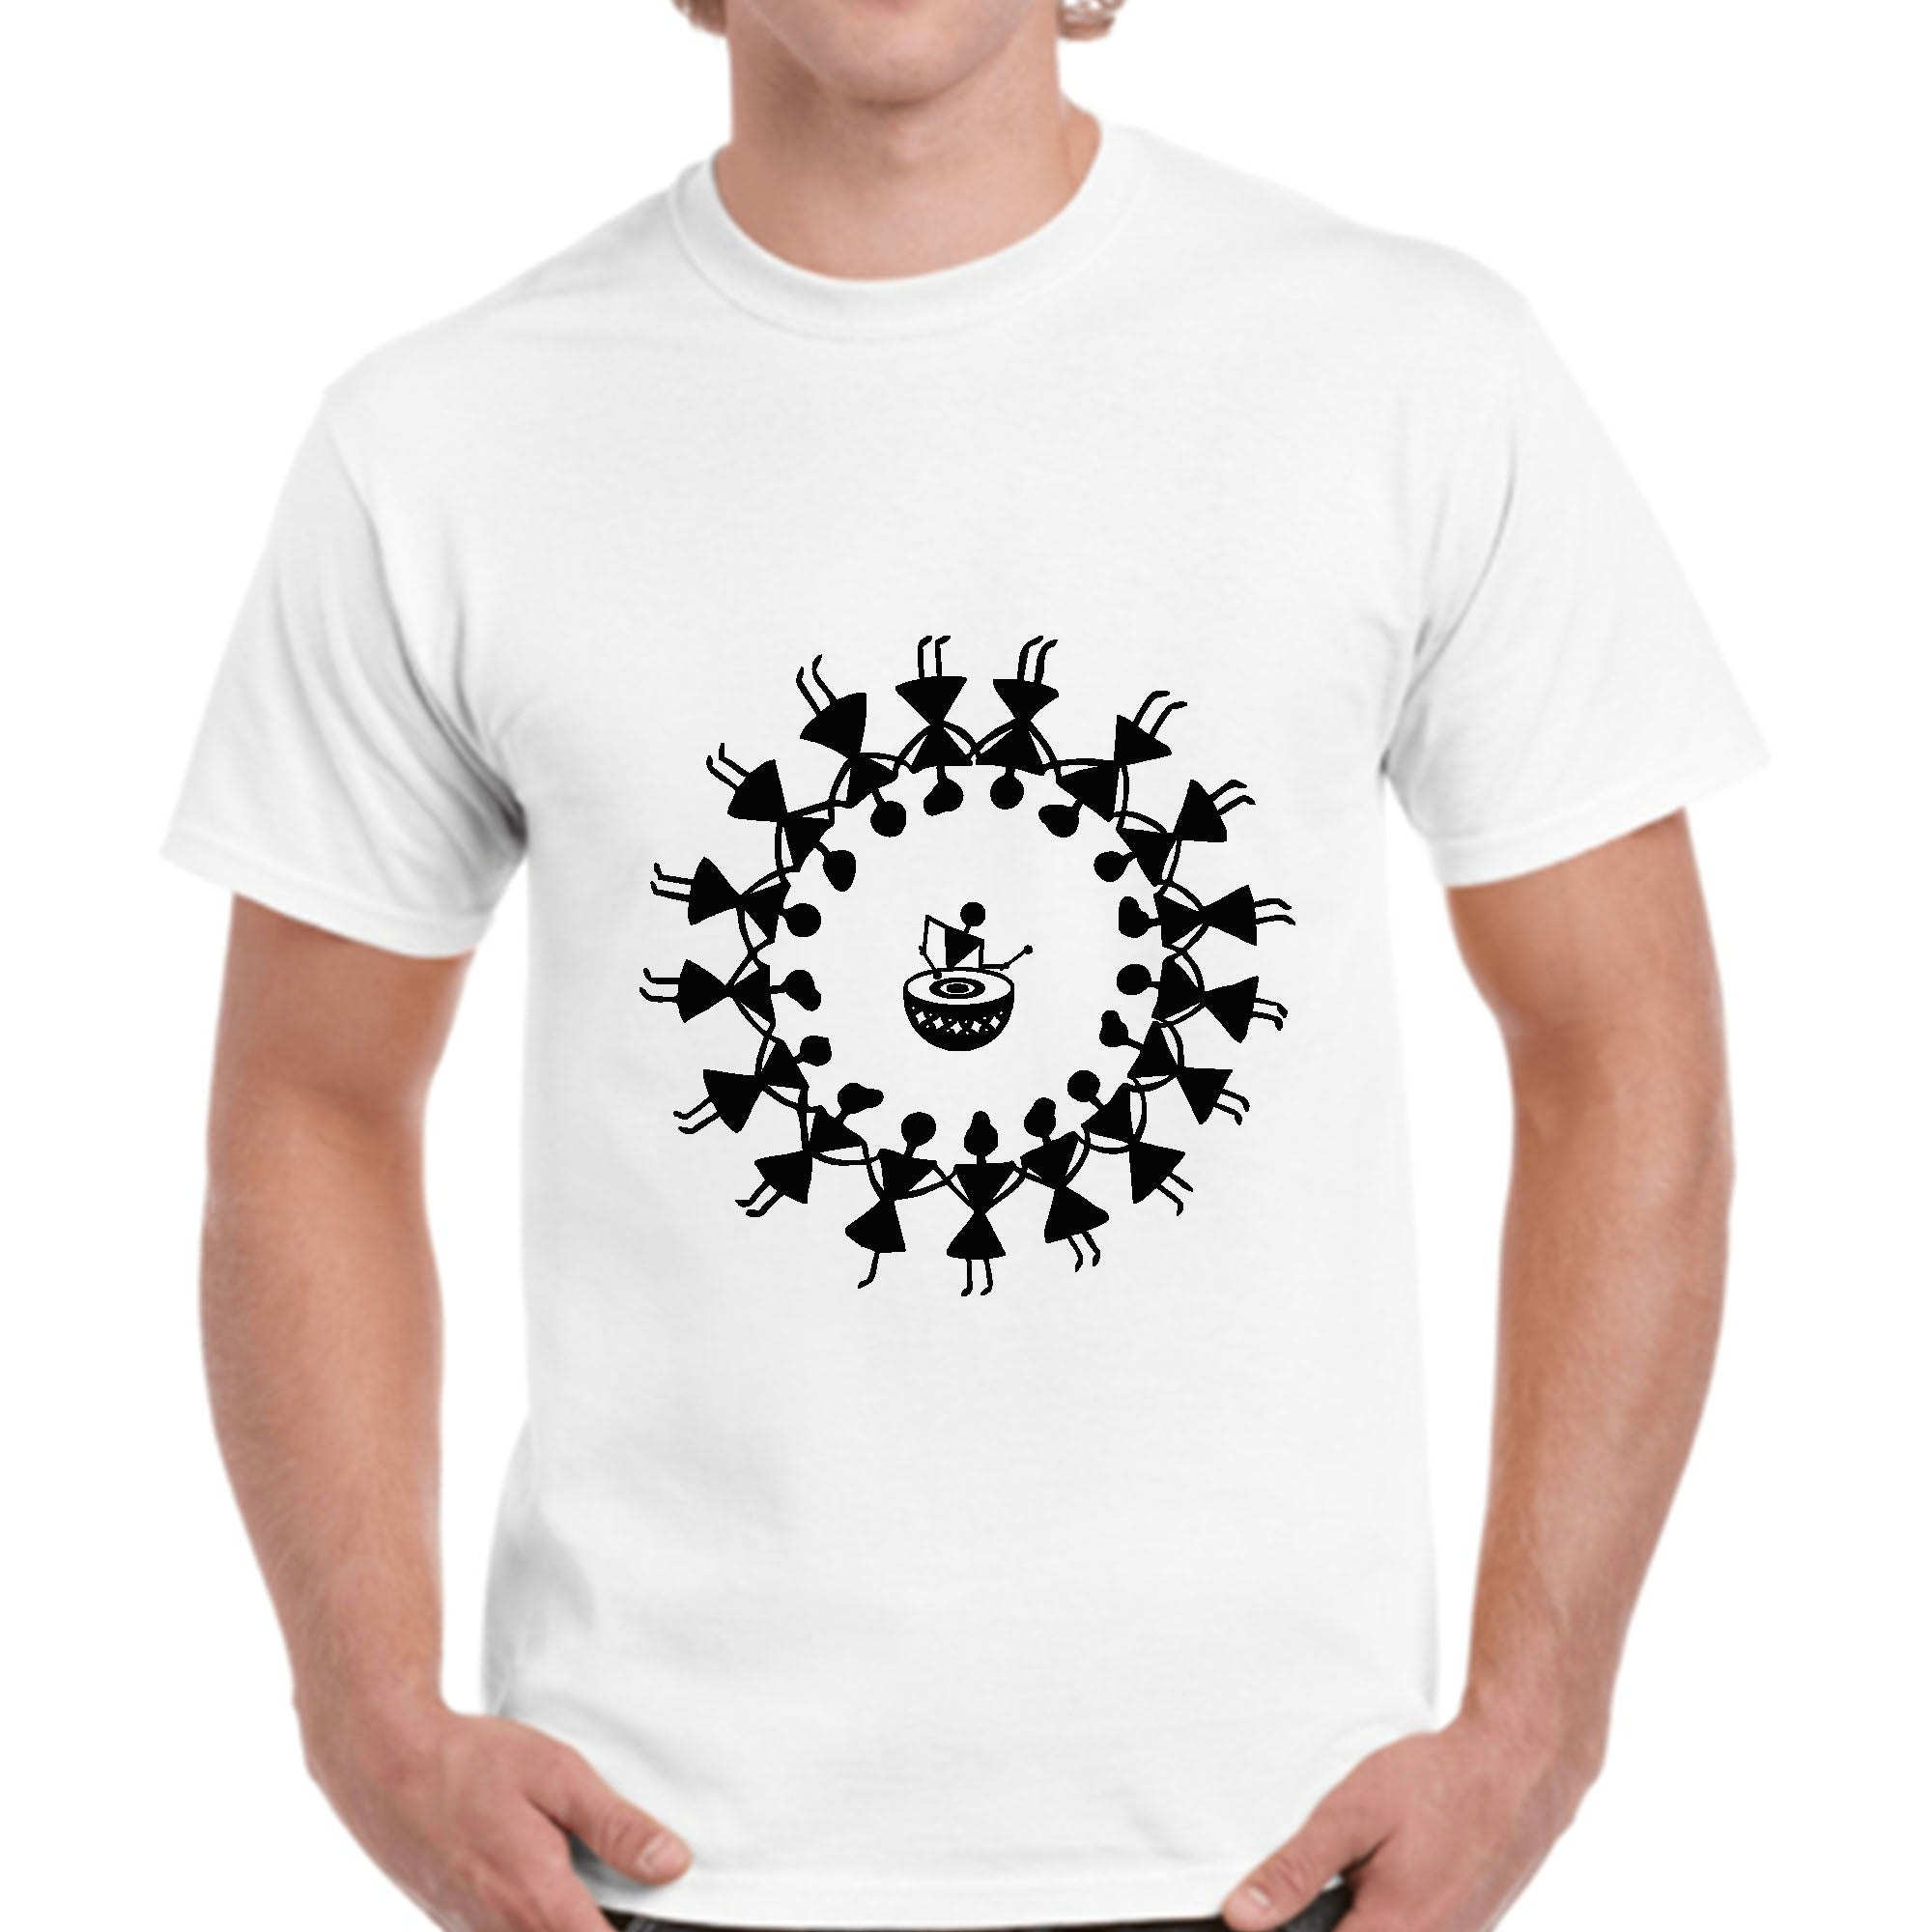 Beautiful Circle Design T-Shirt Printable Digital Download - BohoEntice